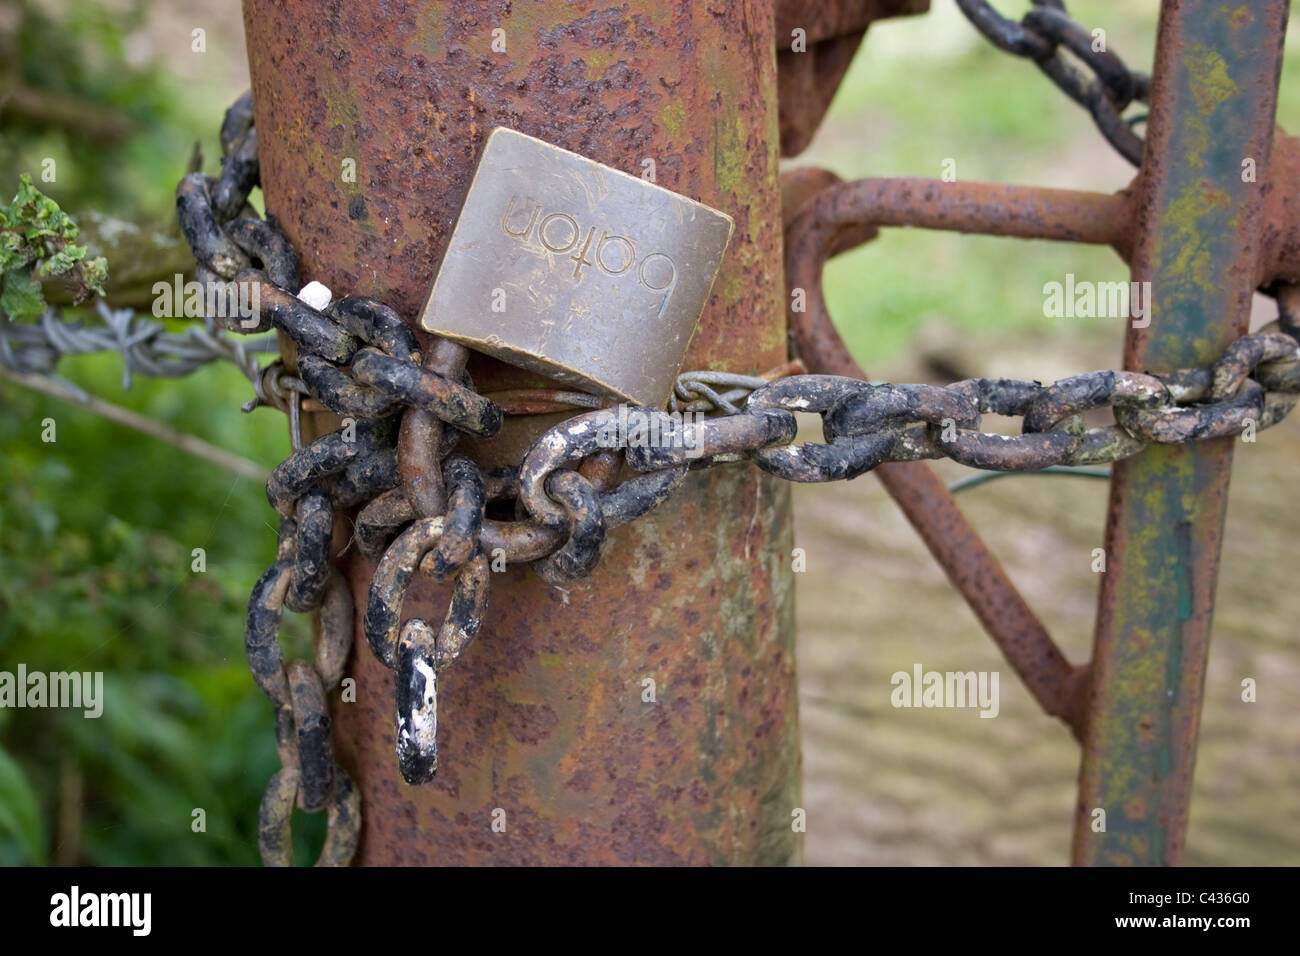 padlock rust gate field post chain farm lock weathered oxidise metal links close up brass secure fence wires - Stock Image